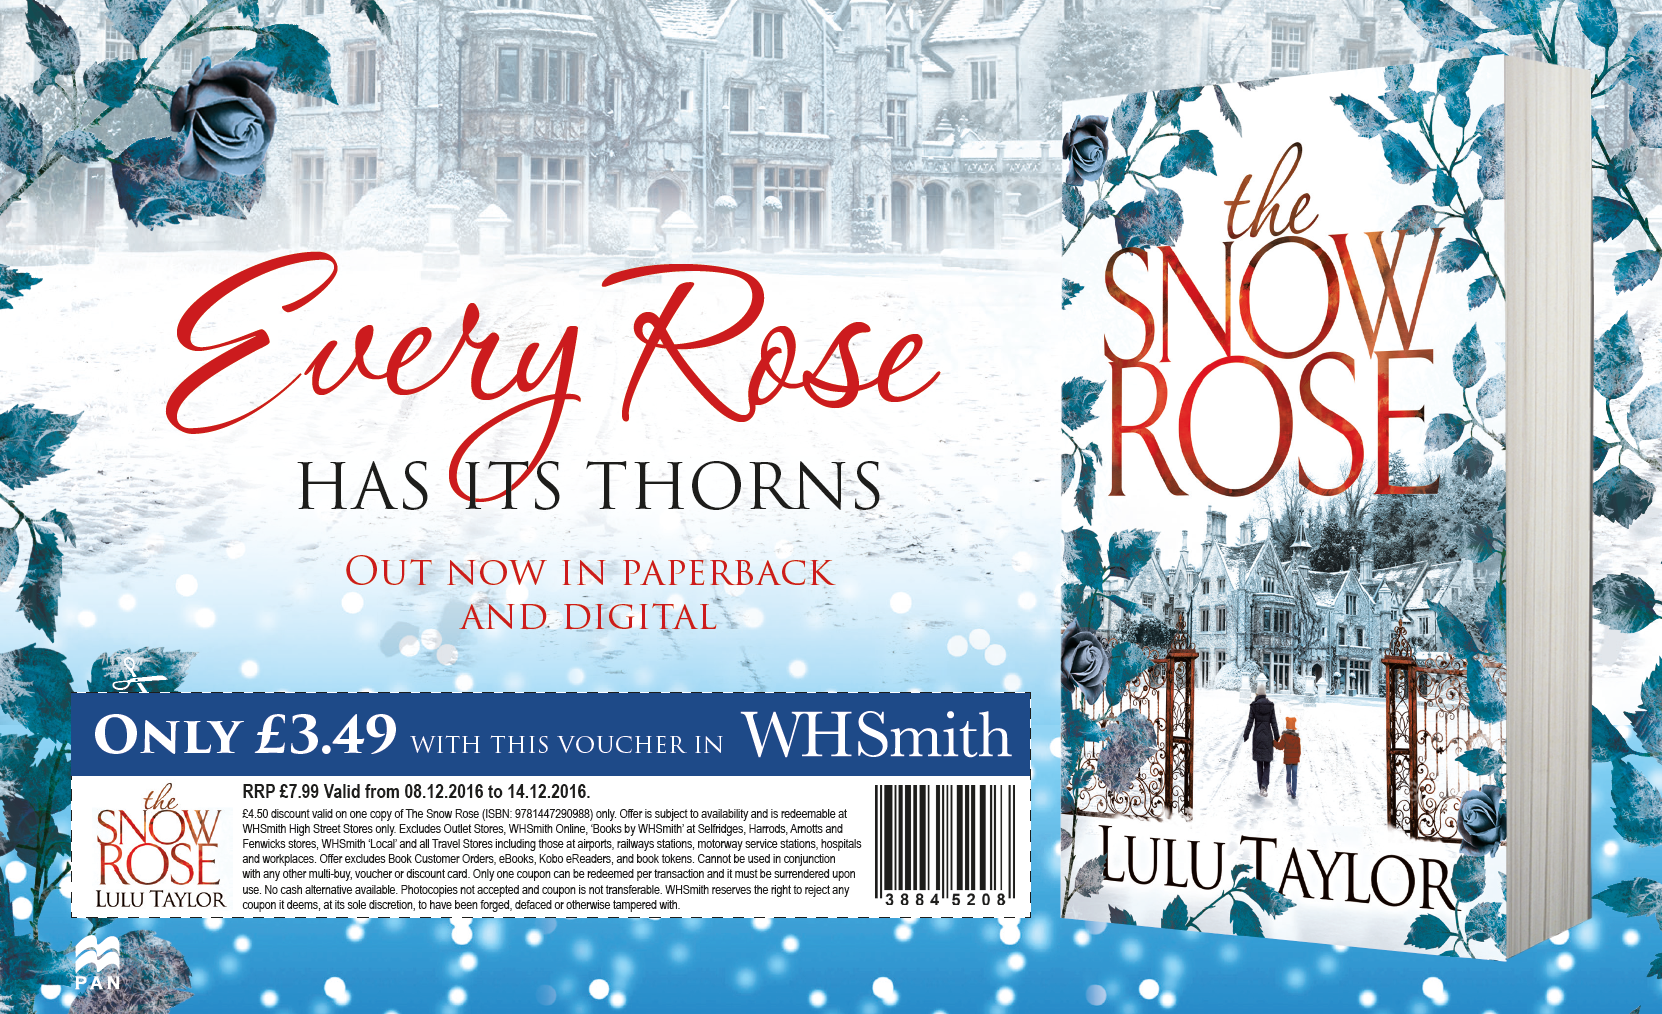 Snow Rose voucher advert